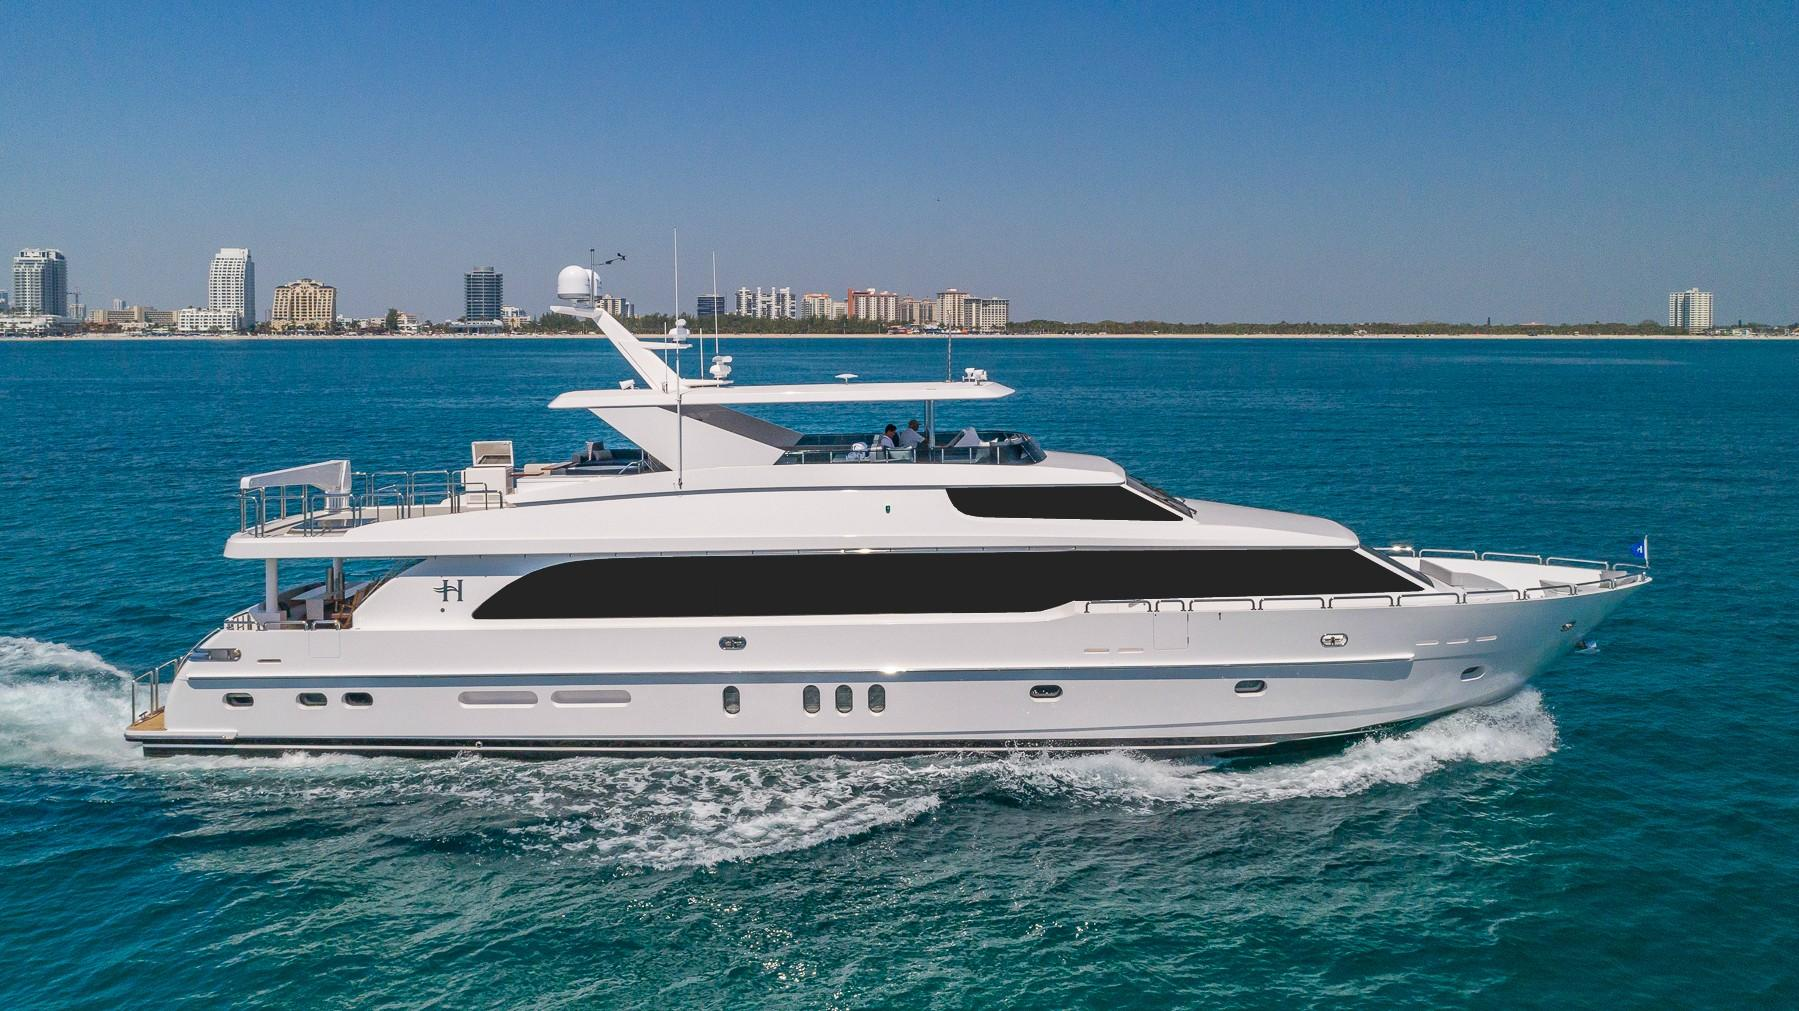 2018 Hargrave 100 Motor Yacht Hmy Sales 33976 Fuel Filter Raised Pilothouse